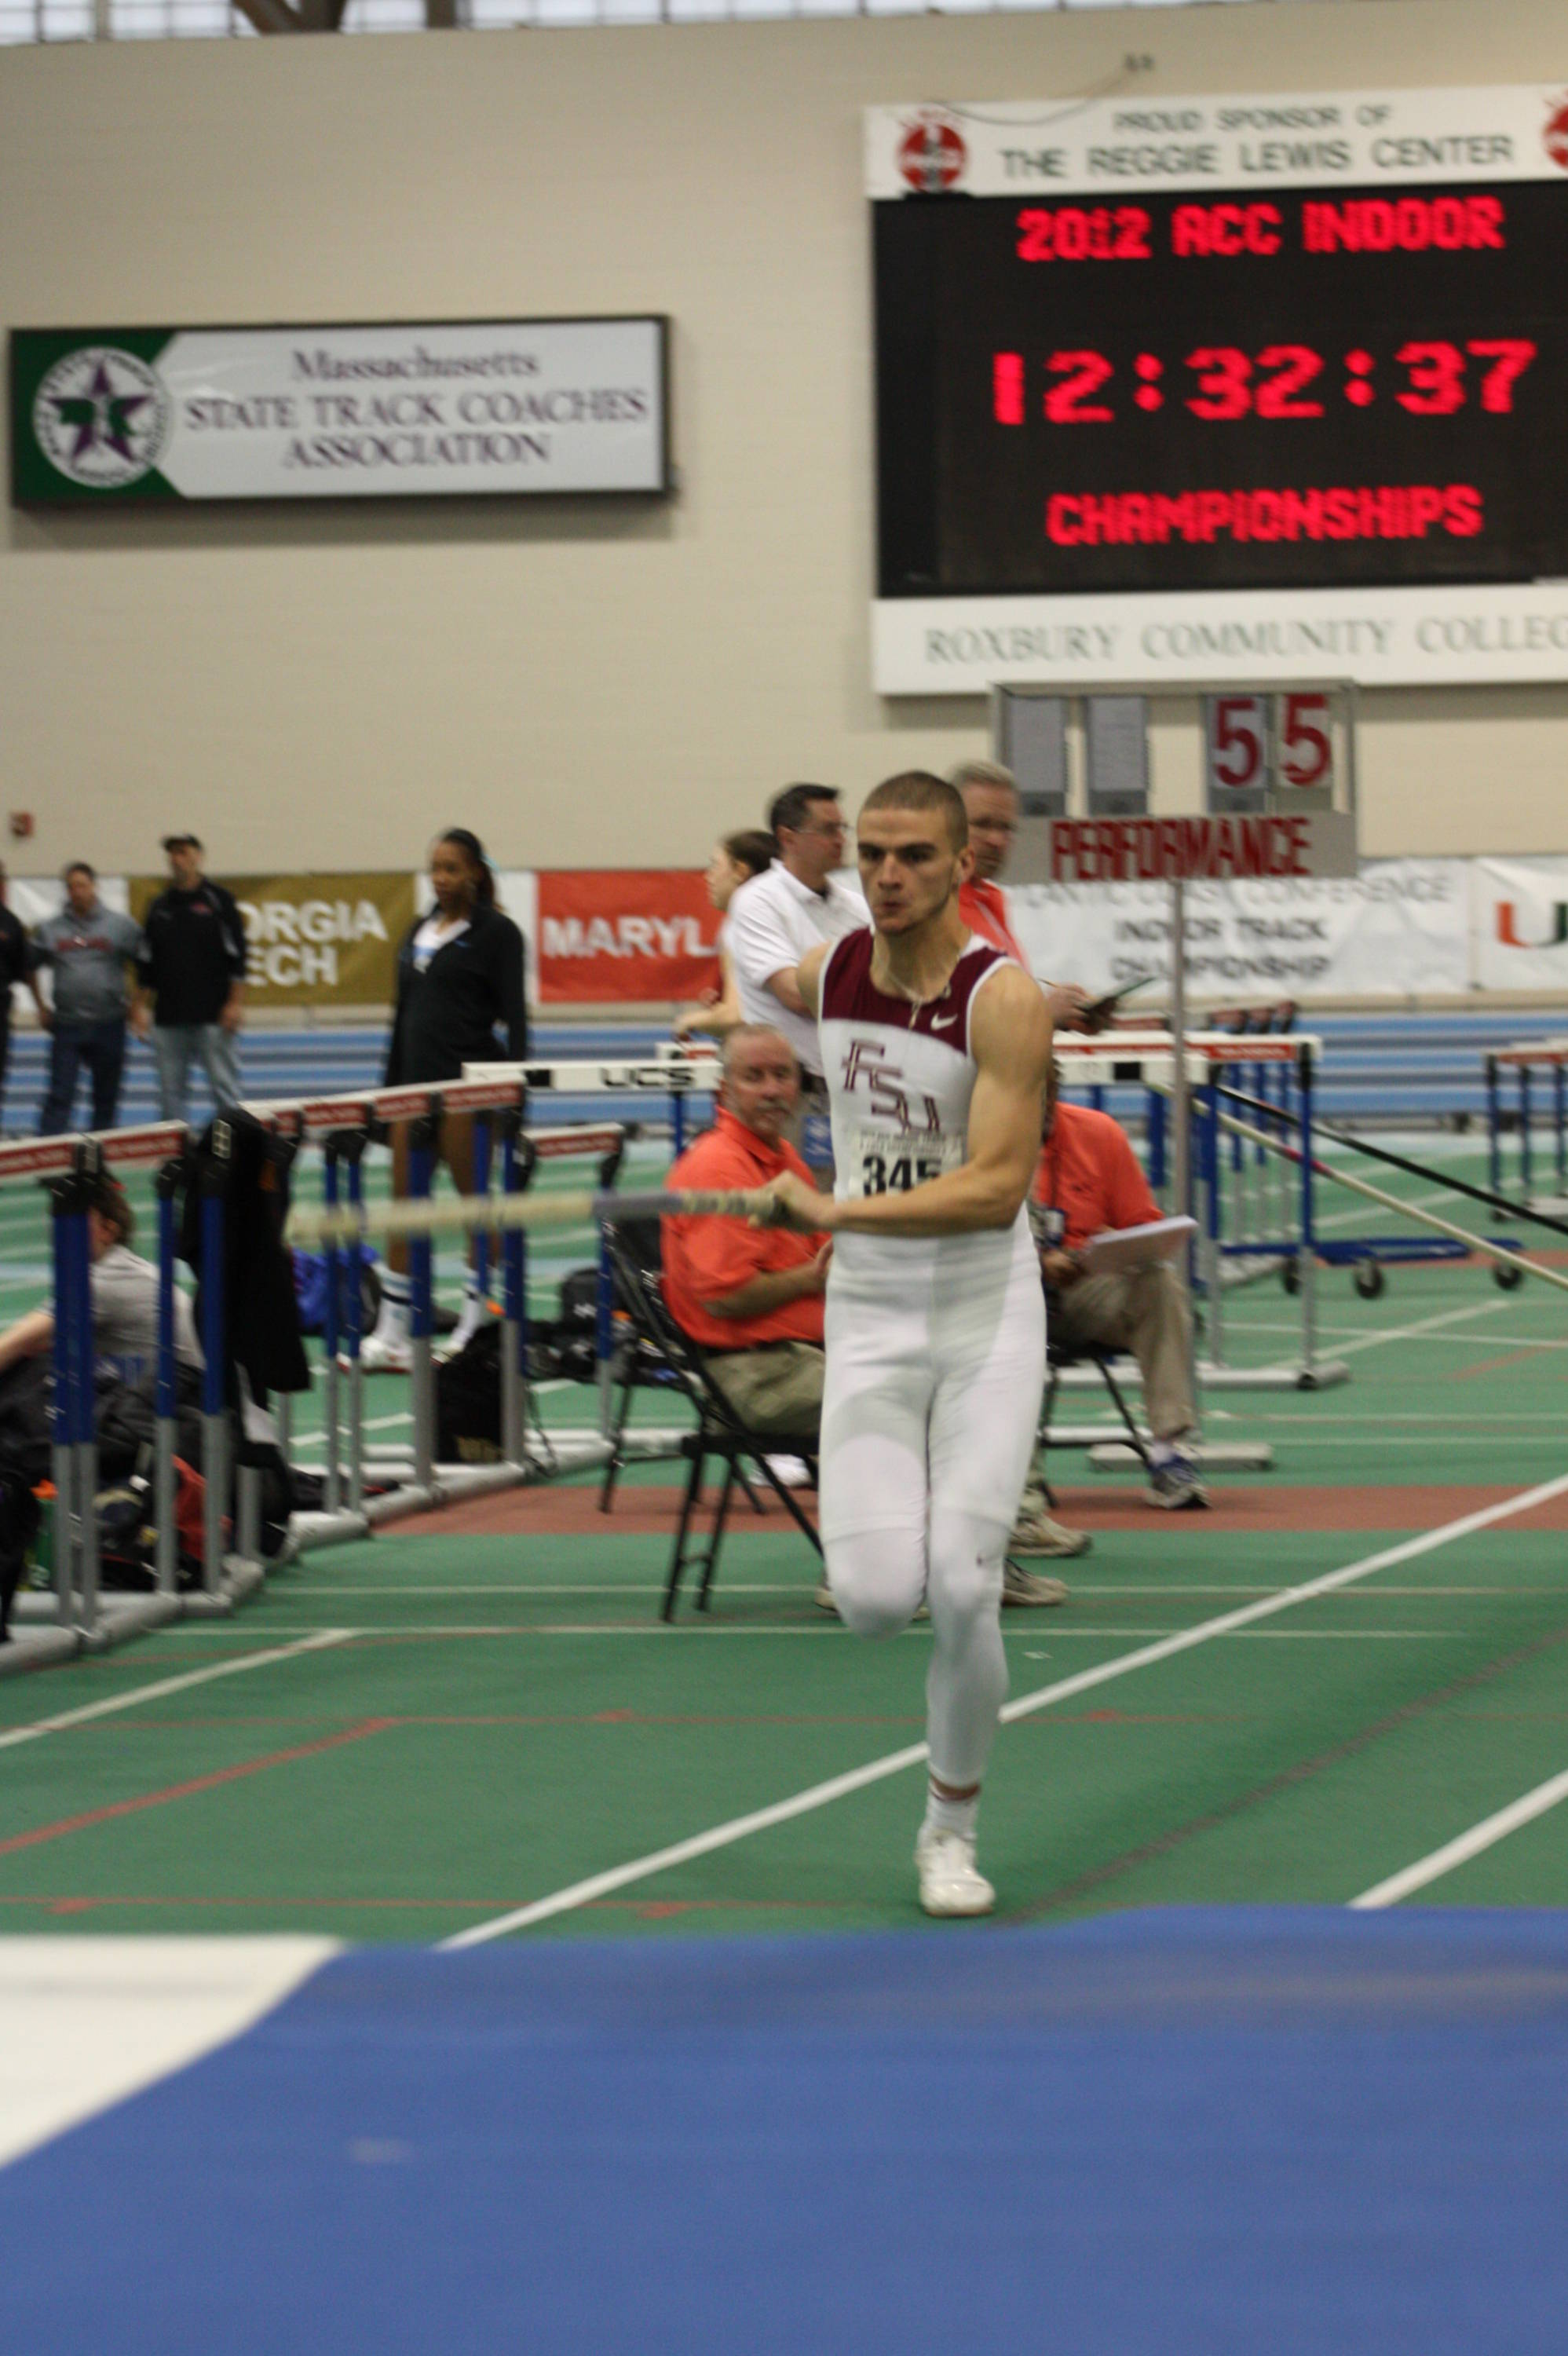 Daniel Salgado had PR's in six of seven events on his way to a sixth-place finish in the heptathlon.